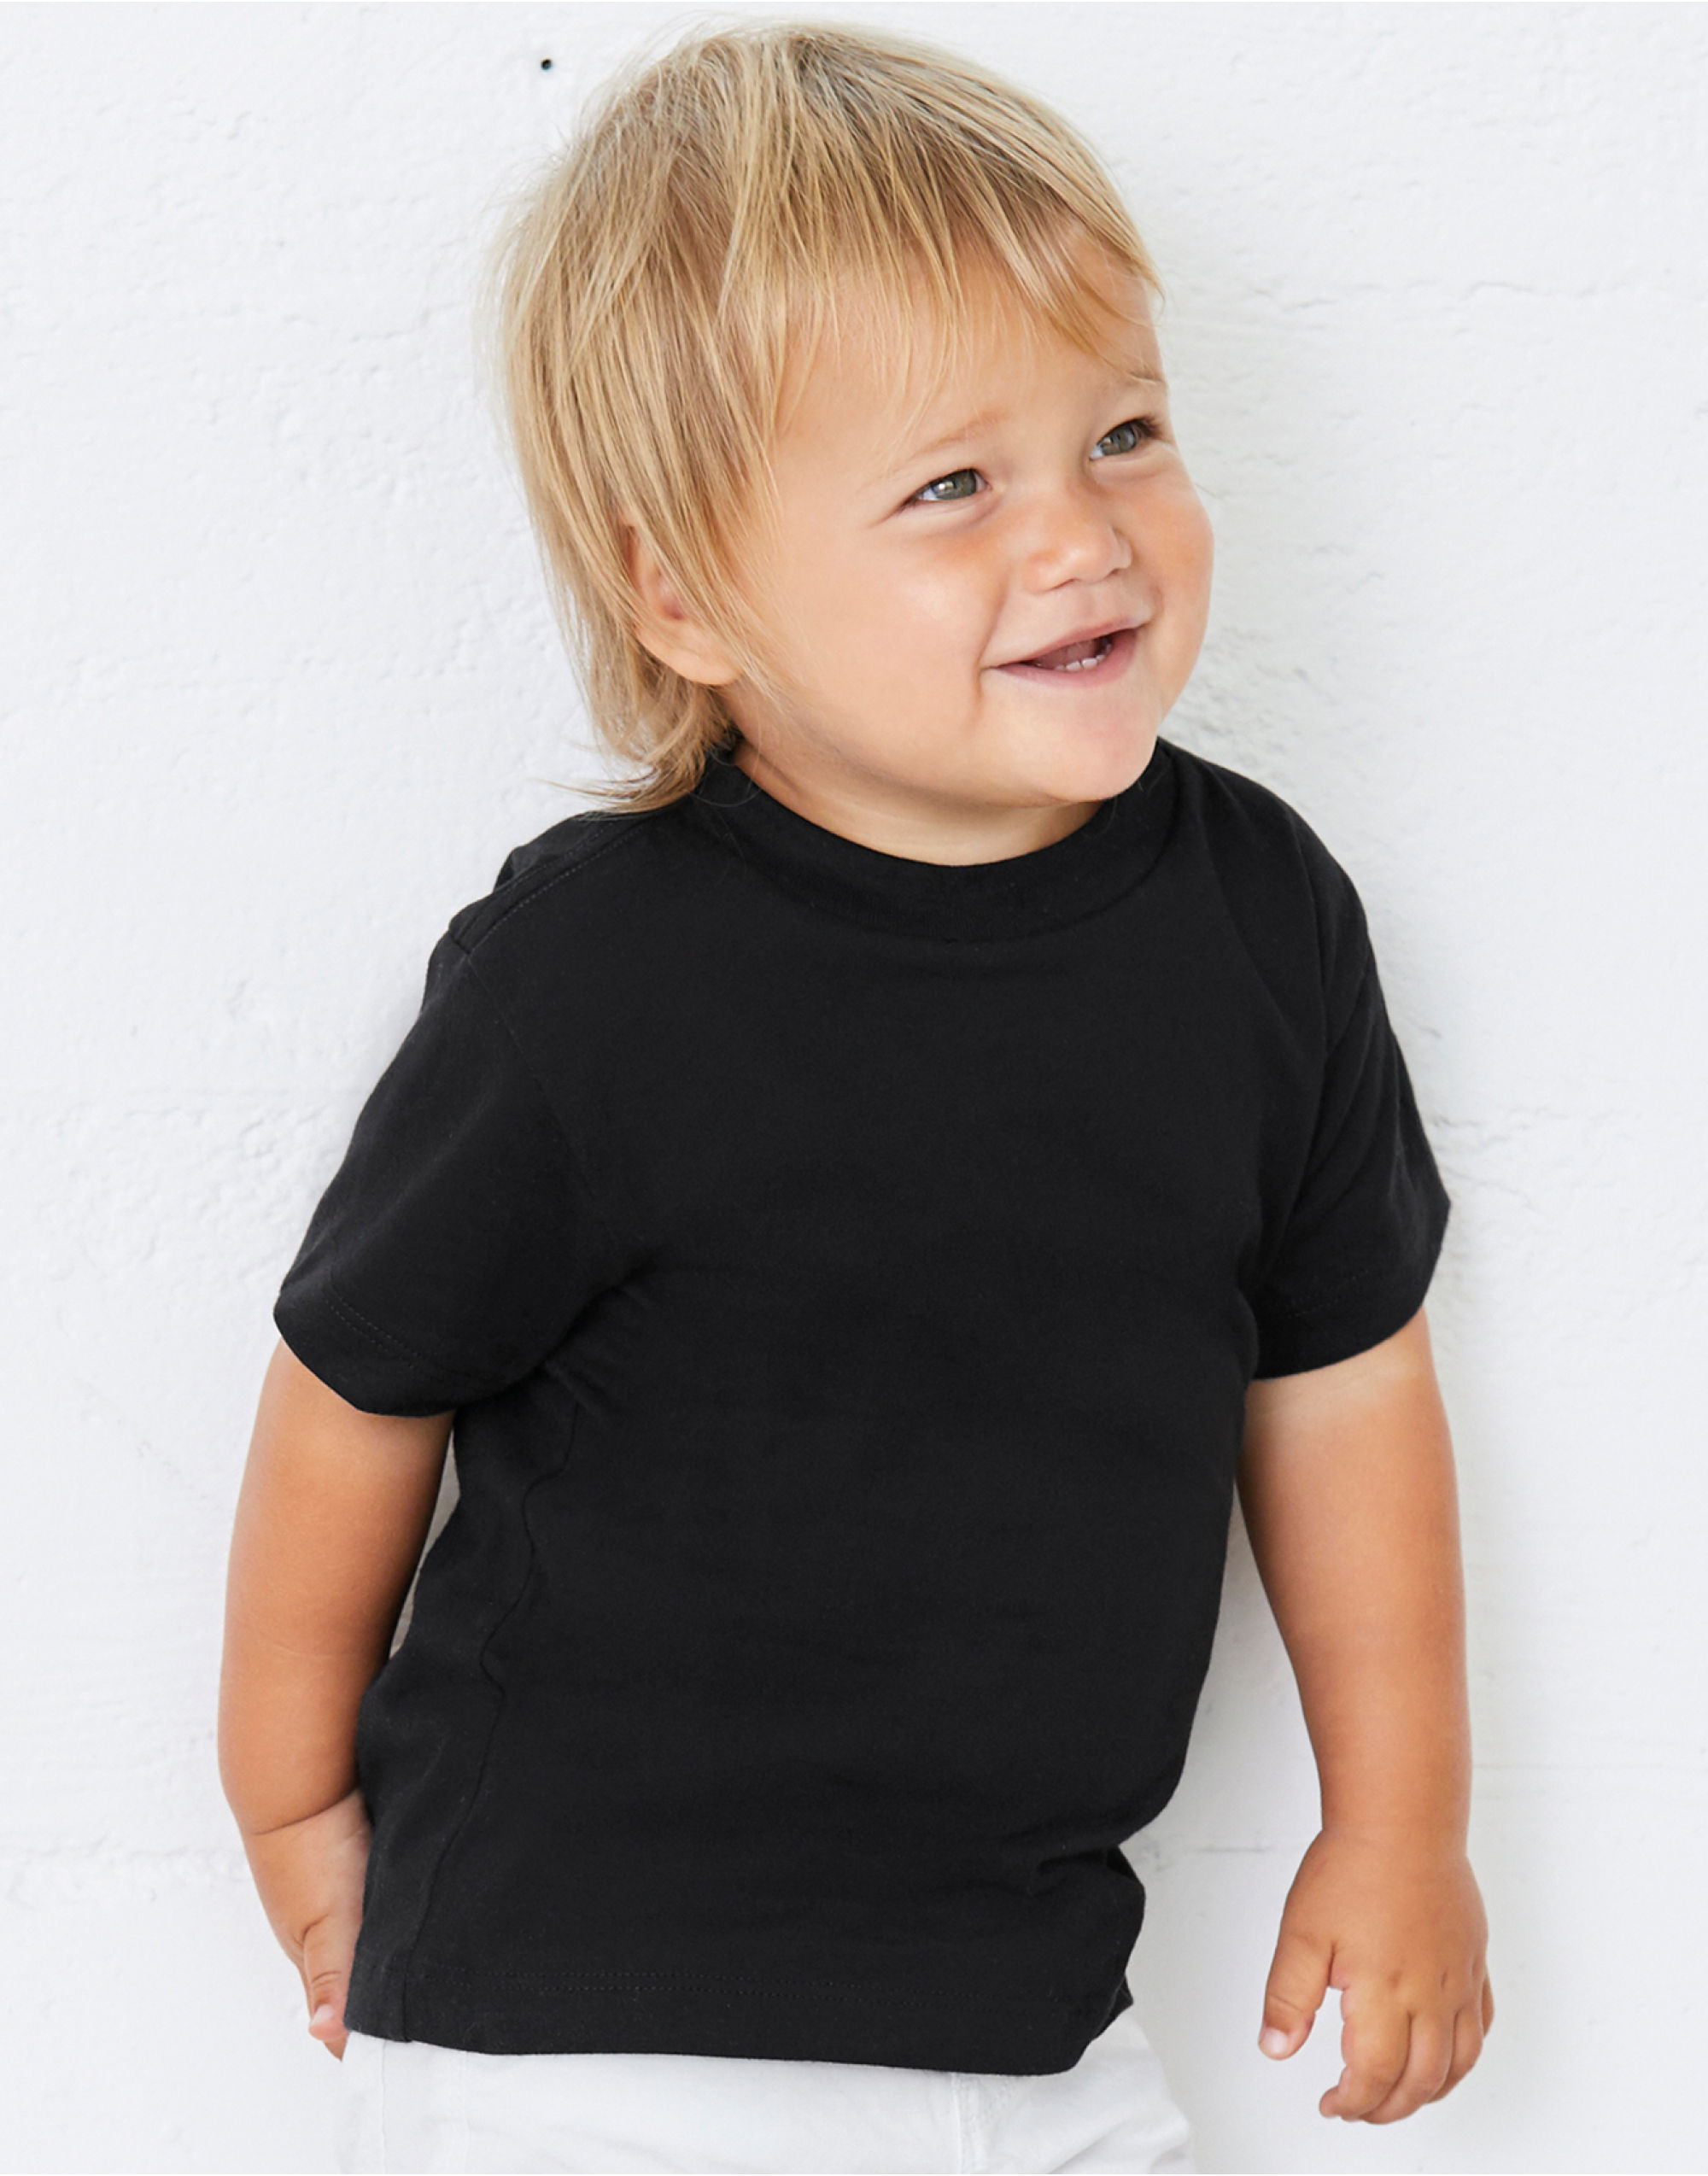 Bella Toddler Jersey Short Sleeve T-Shirt